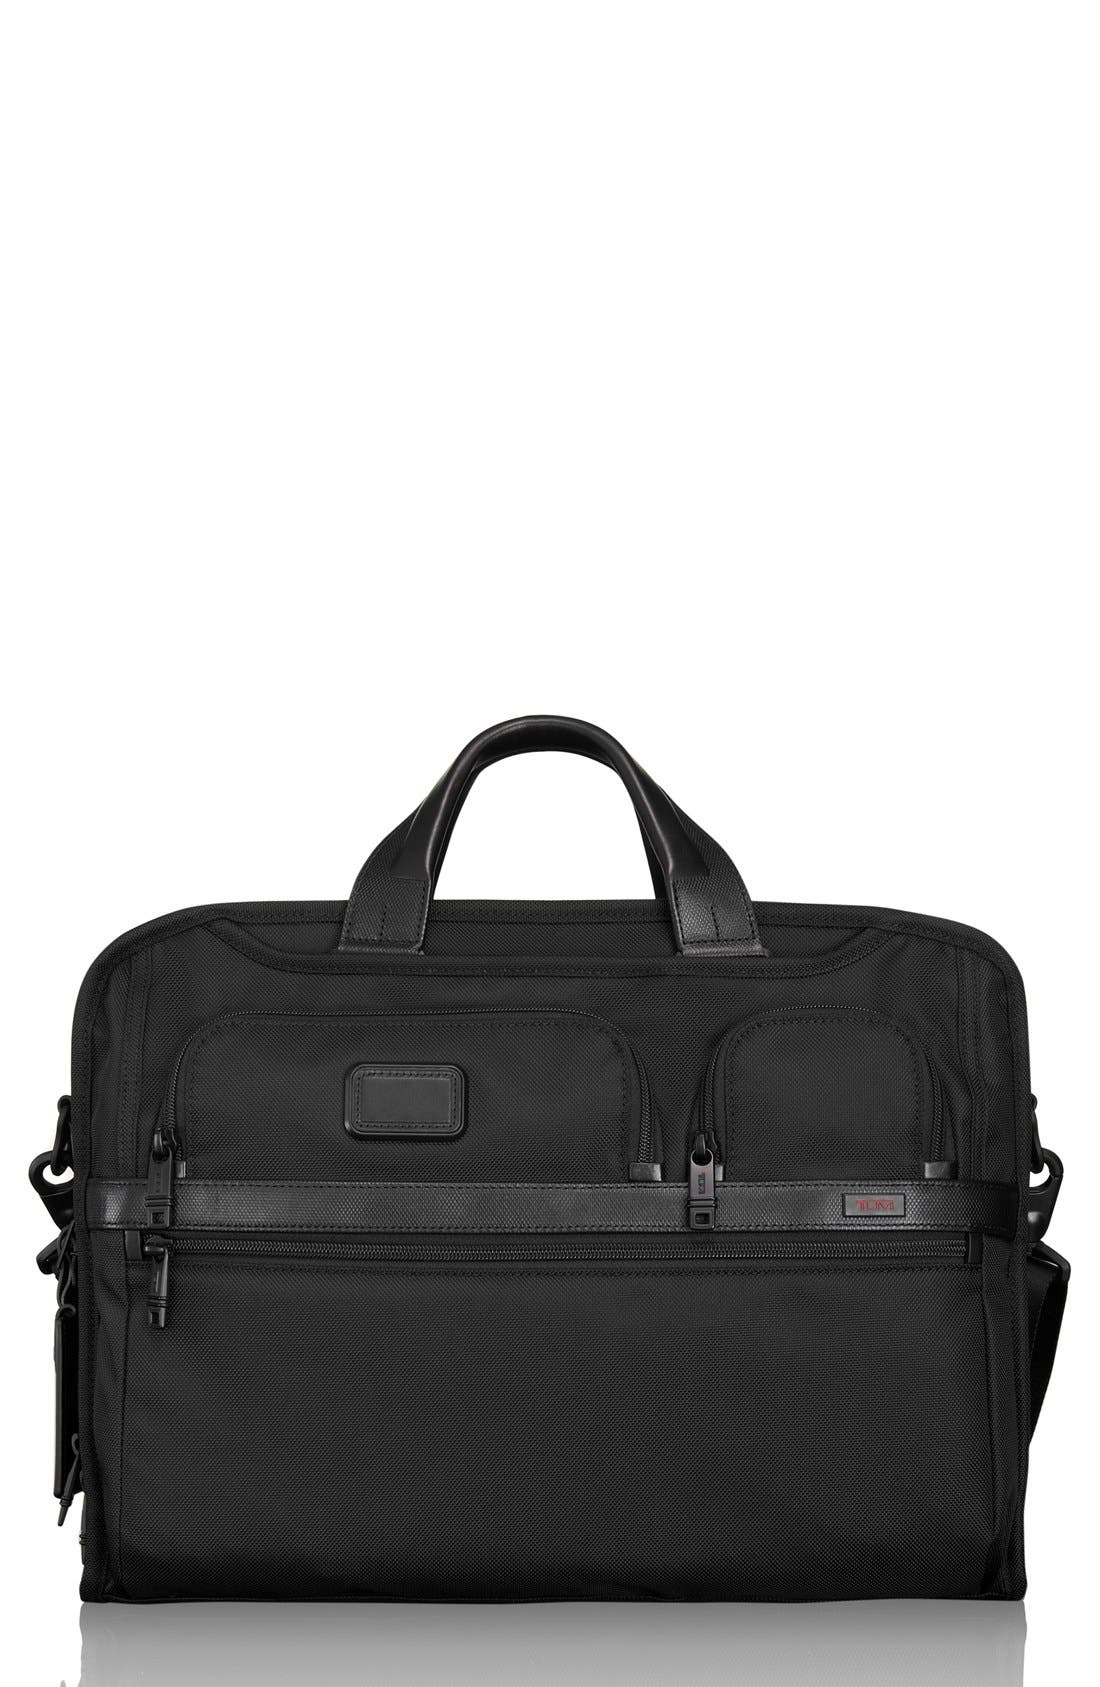 Tumi 'Alpha 2' Laptop Briefcase with Tumi ID Lock Pocket